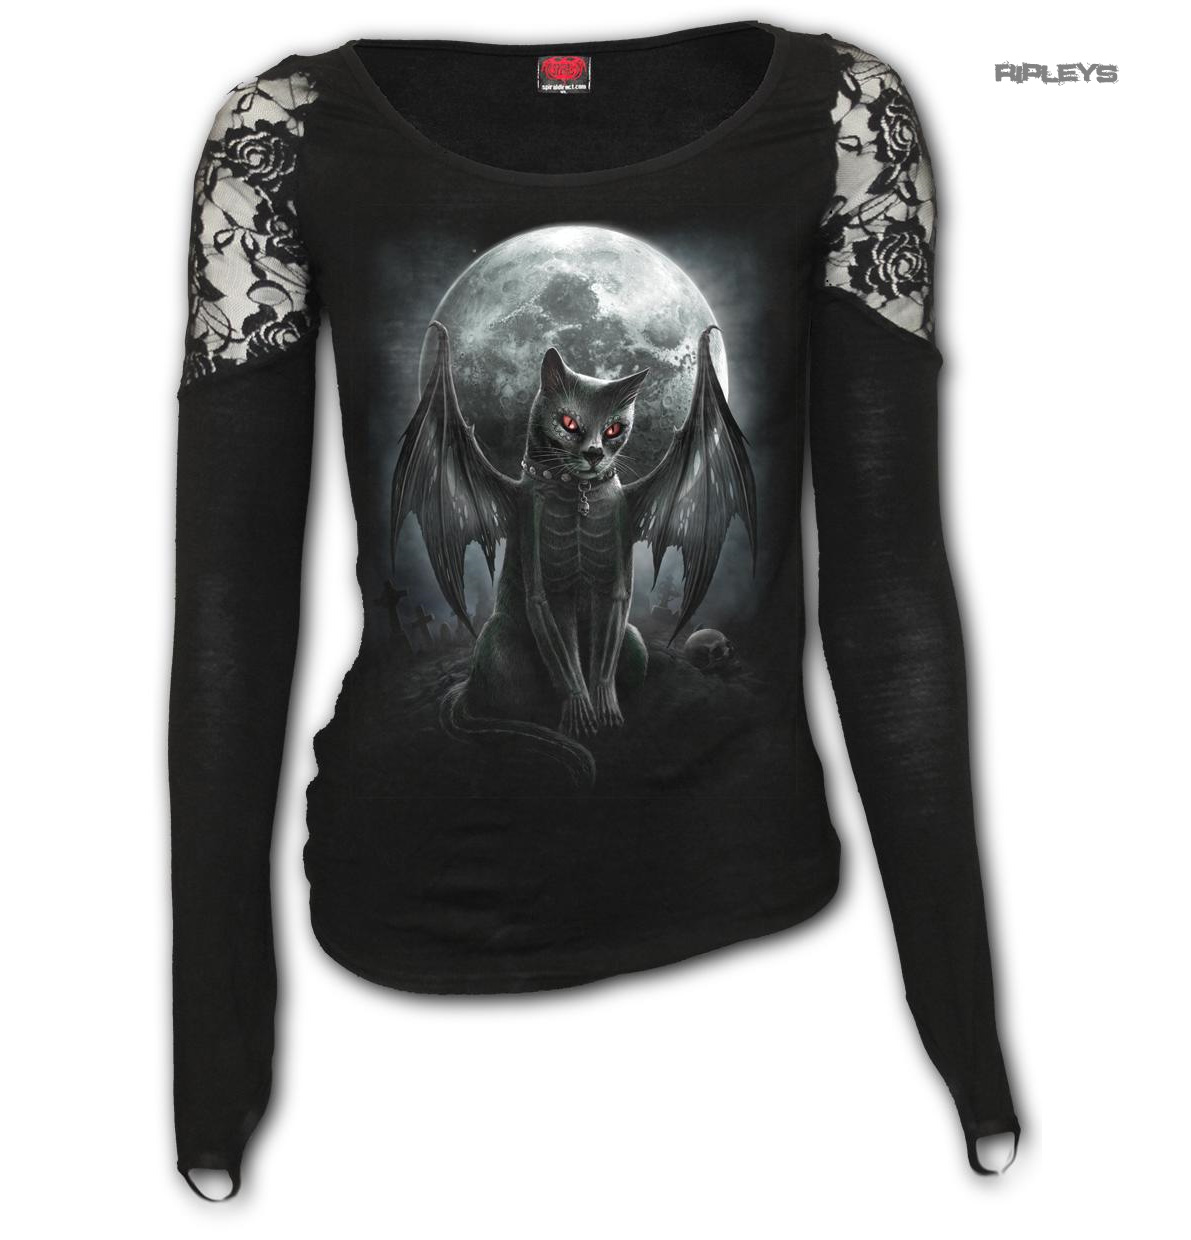 Spiral-Direct-Ladies-Gothic-Black-Top-Vampire-VAMP-CAT-L-Sleeve-Lace-All-Sizes thumbnail 10